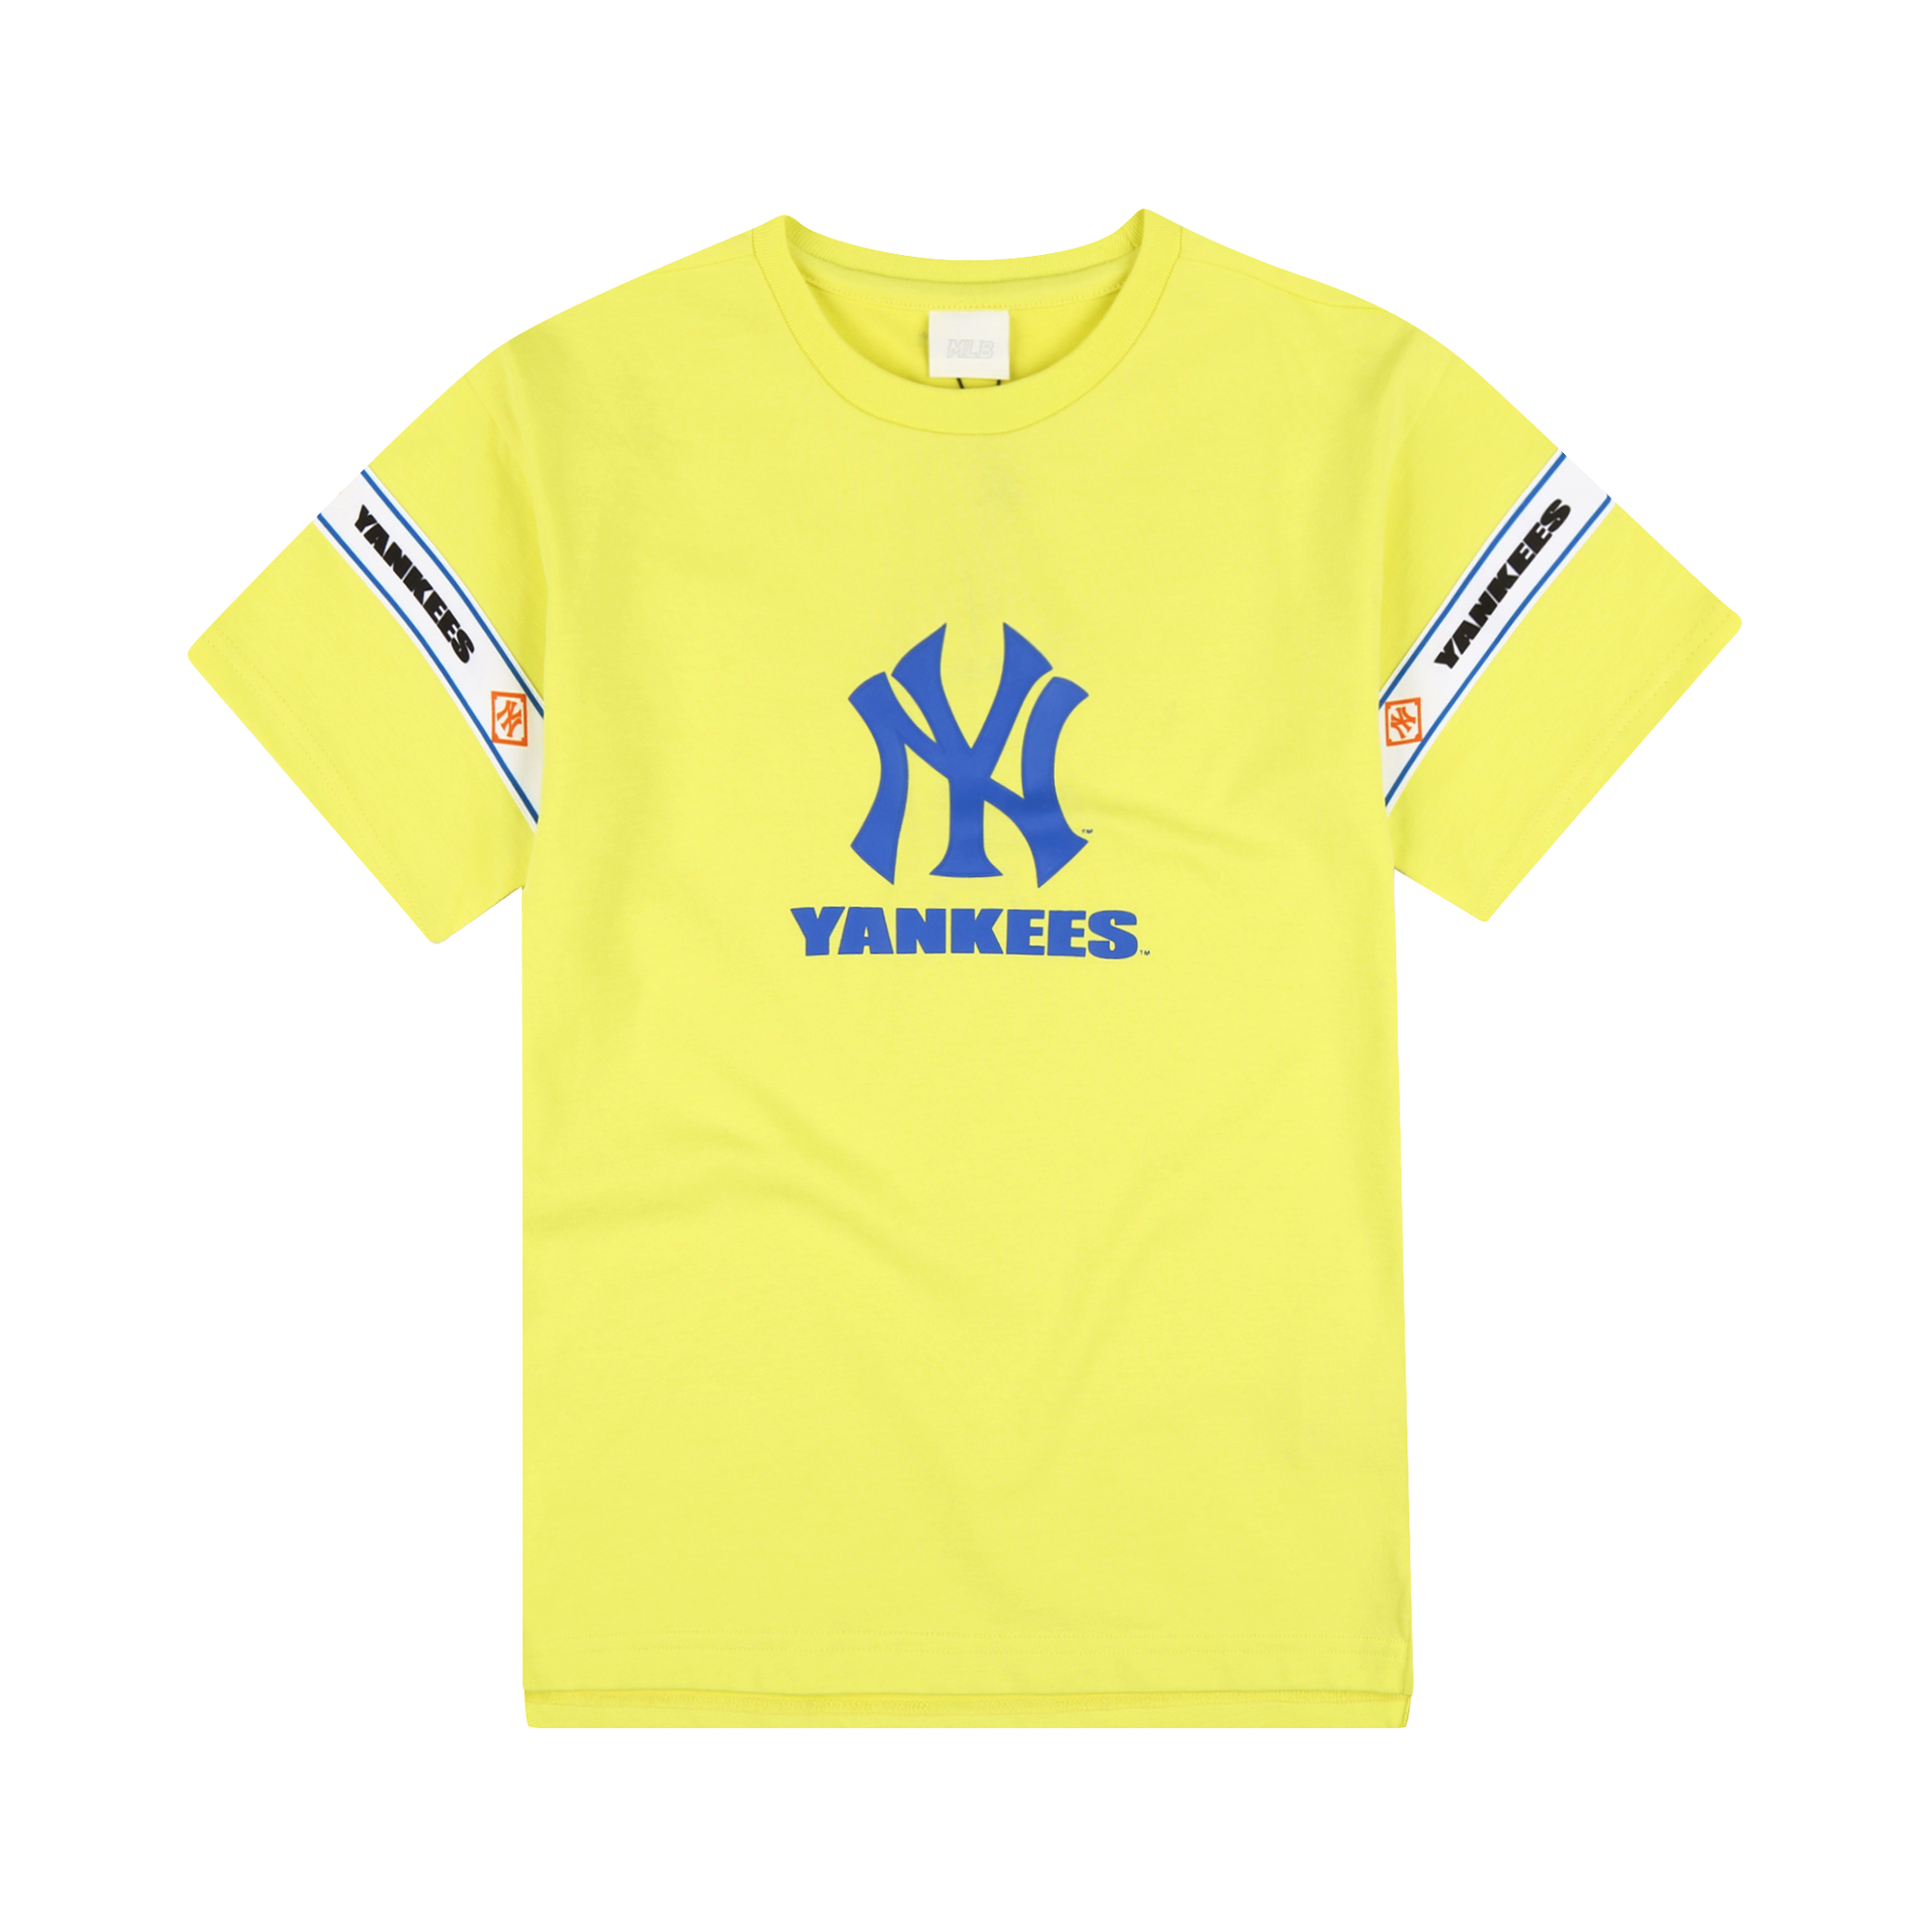 NEW YORK YANKEES UNISEX COLOR BIG LOGO SHORT SLEEVE T-SHIRT